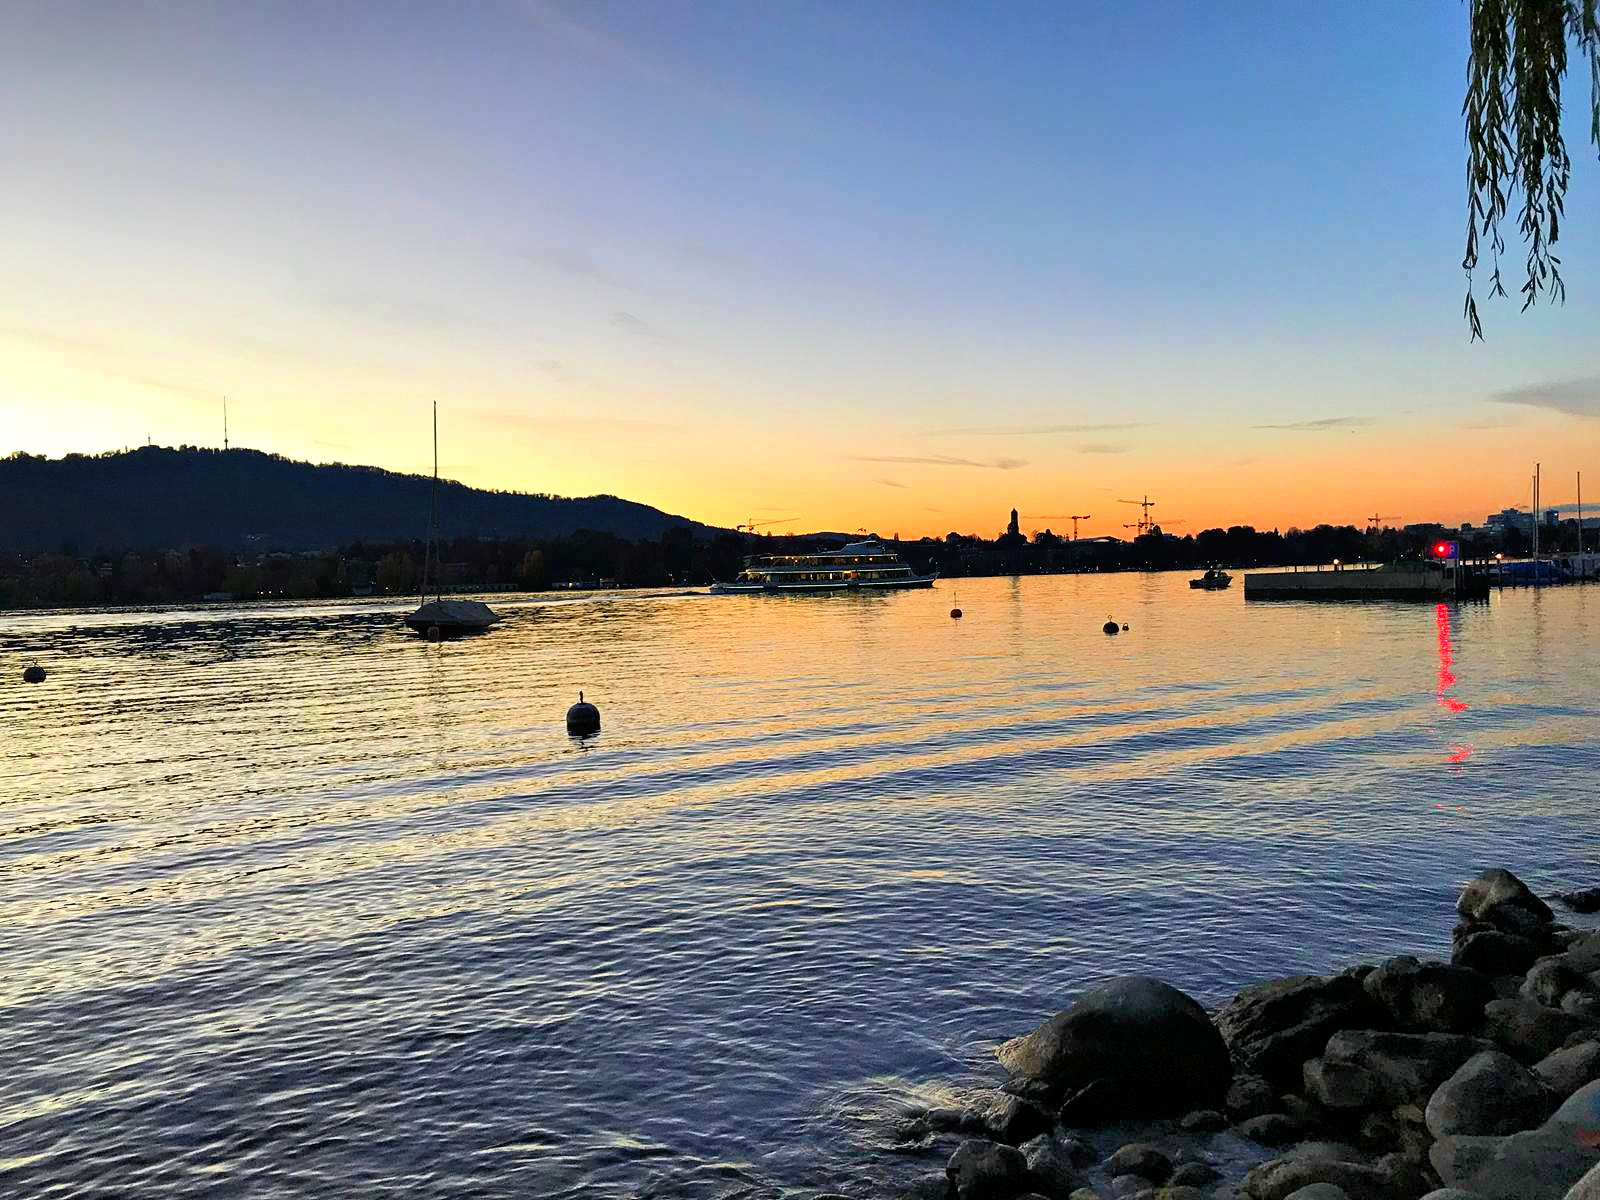 Lake Zürich is so worth seeing!